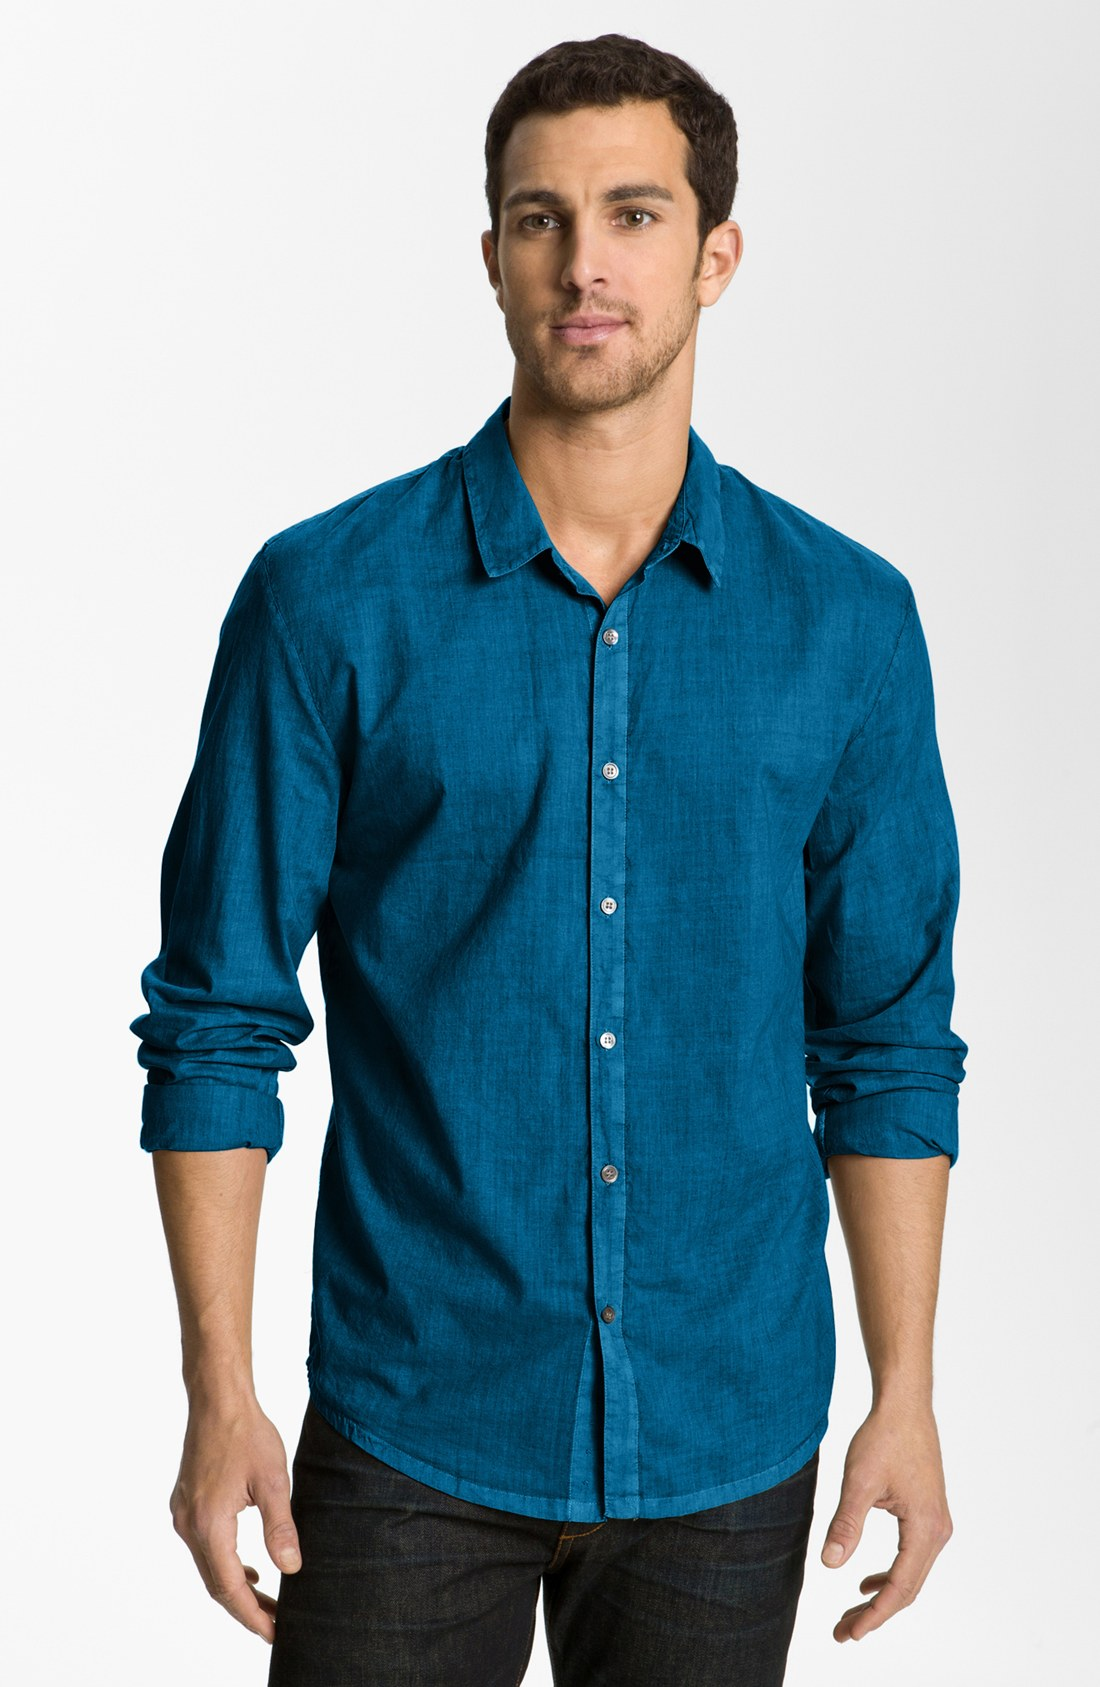 James perse classics woven shirt in blue for men curacao for James perse t shirts sale